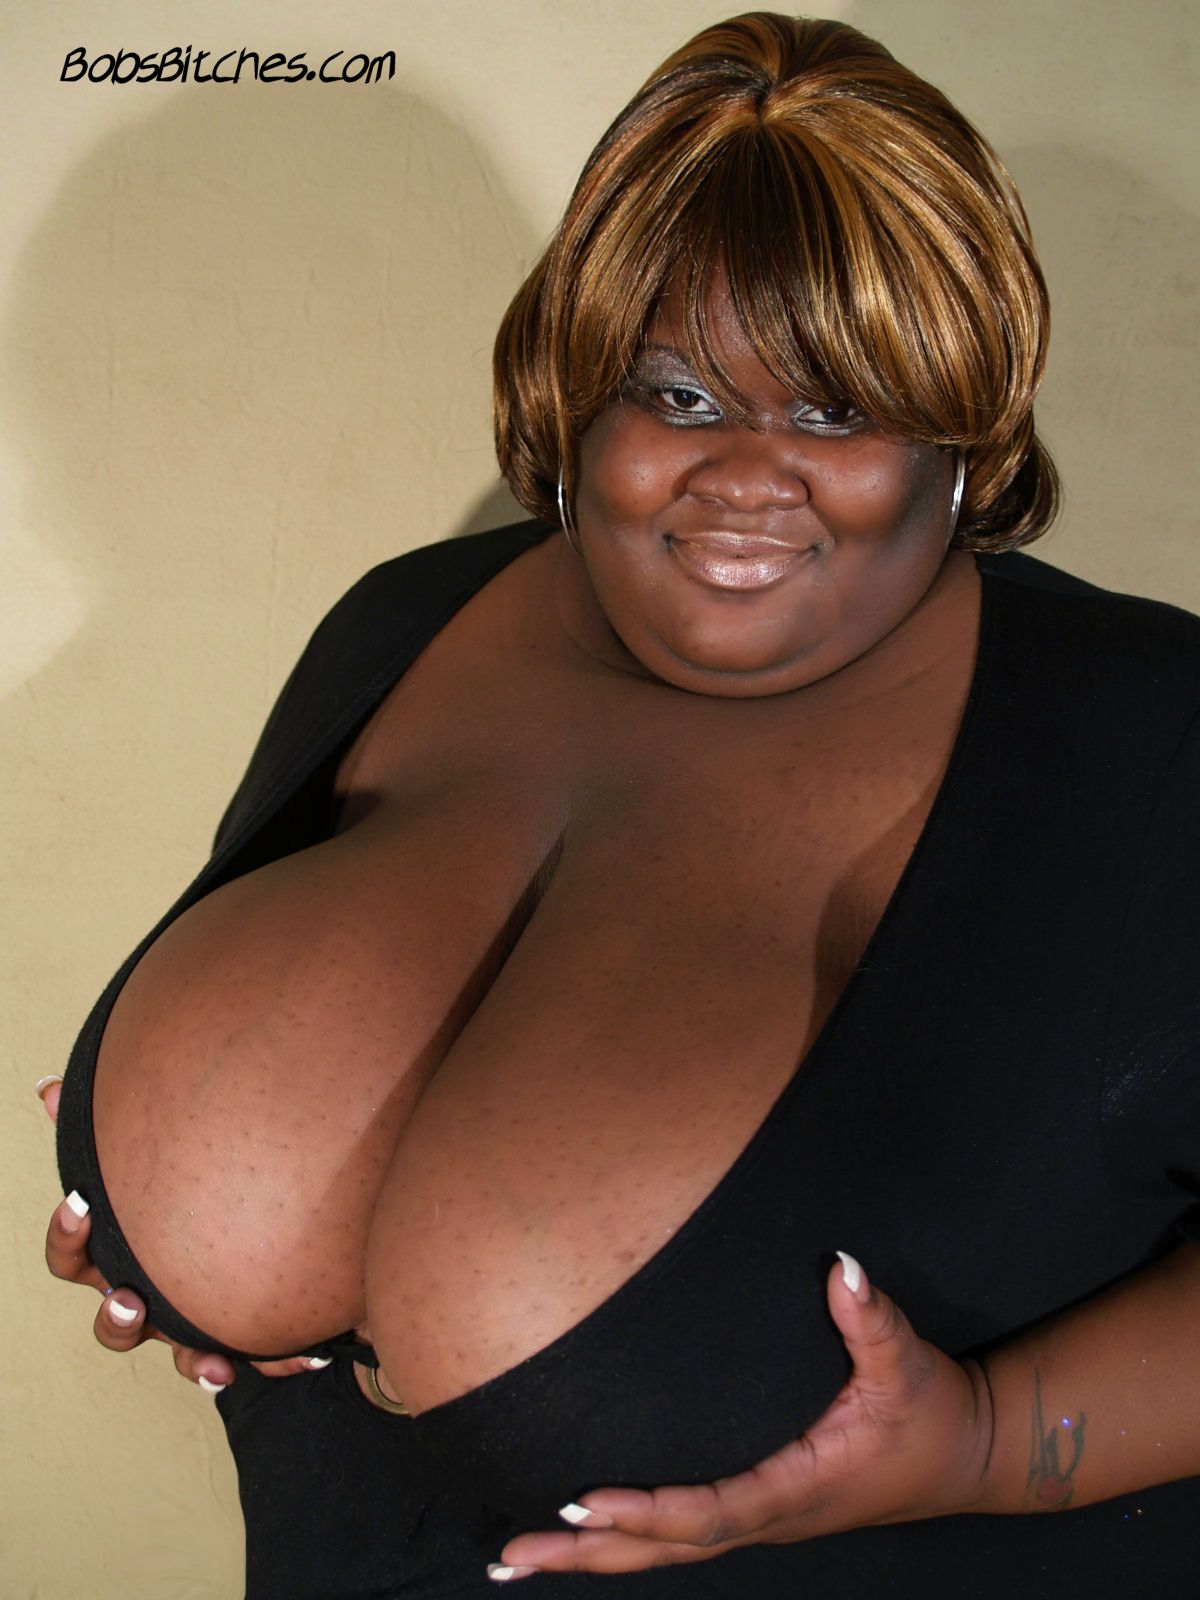 Monstrous ebony bbw with monster tits exposes her deep cleavage.